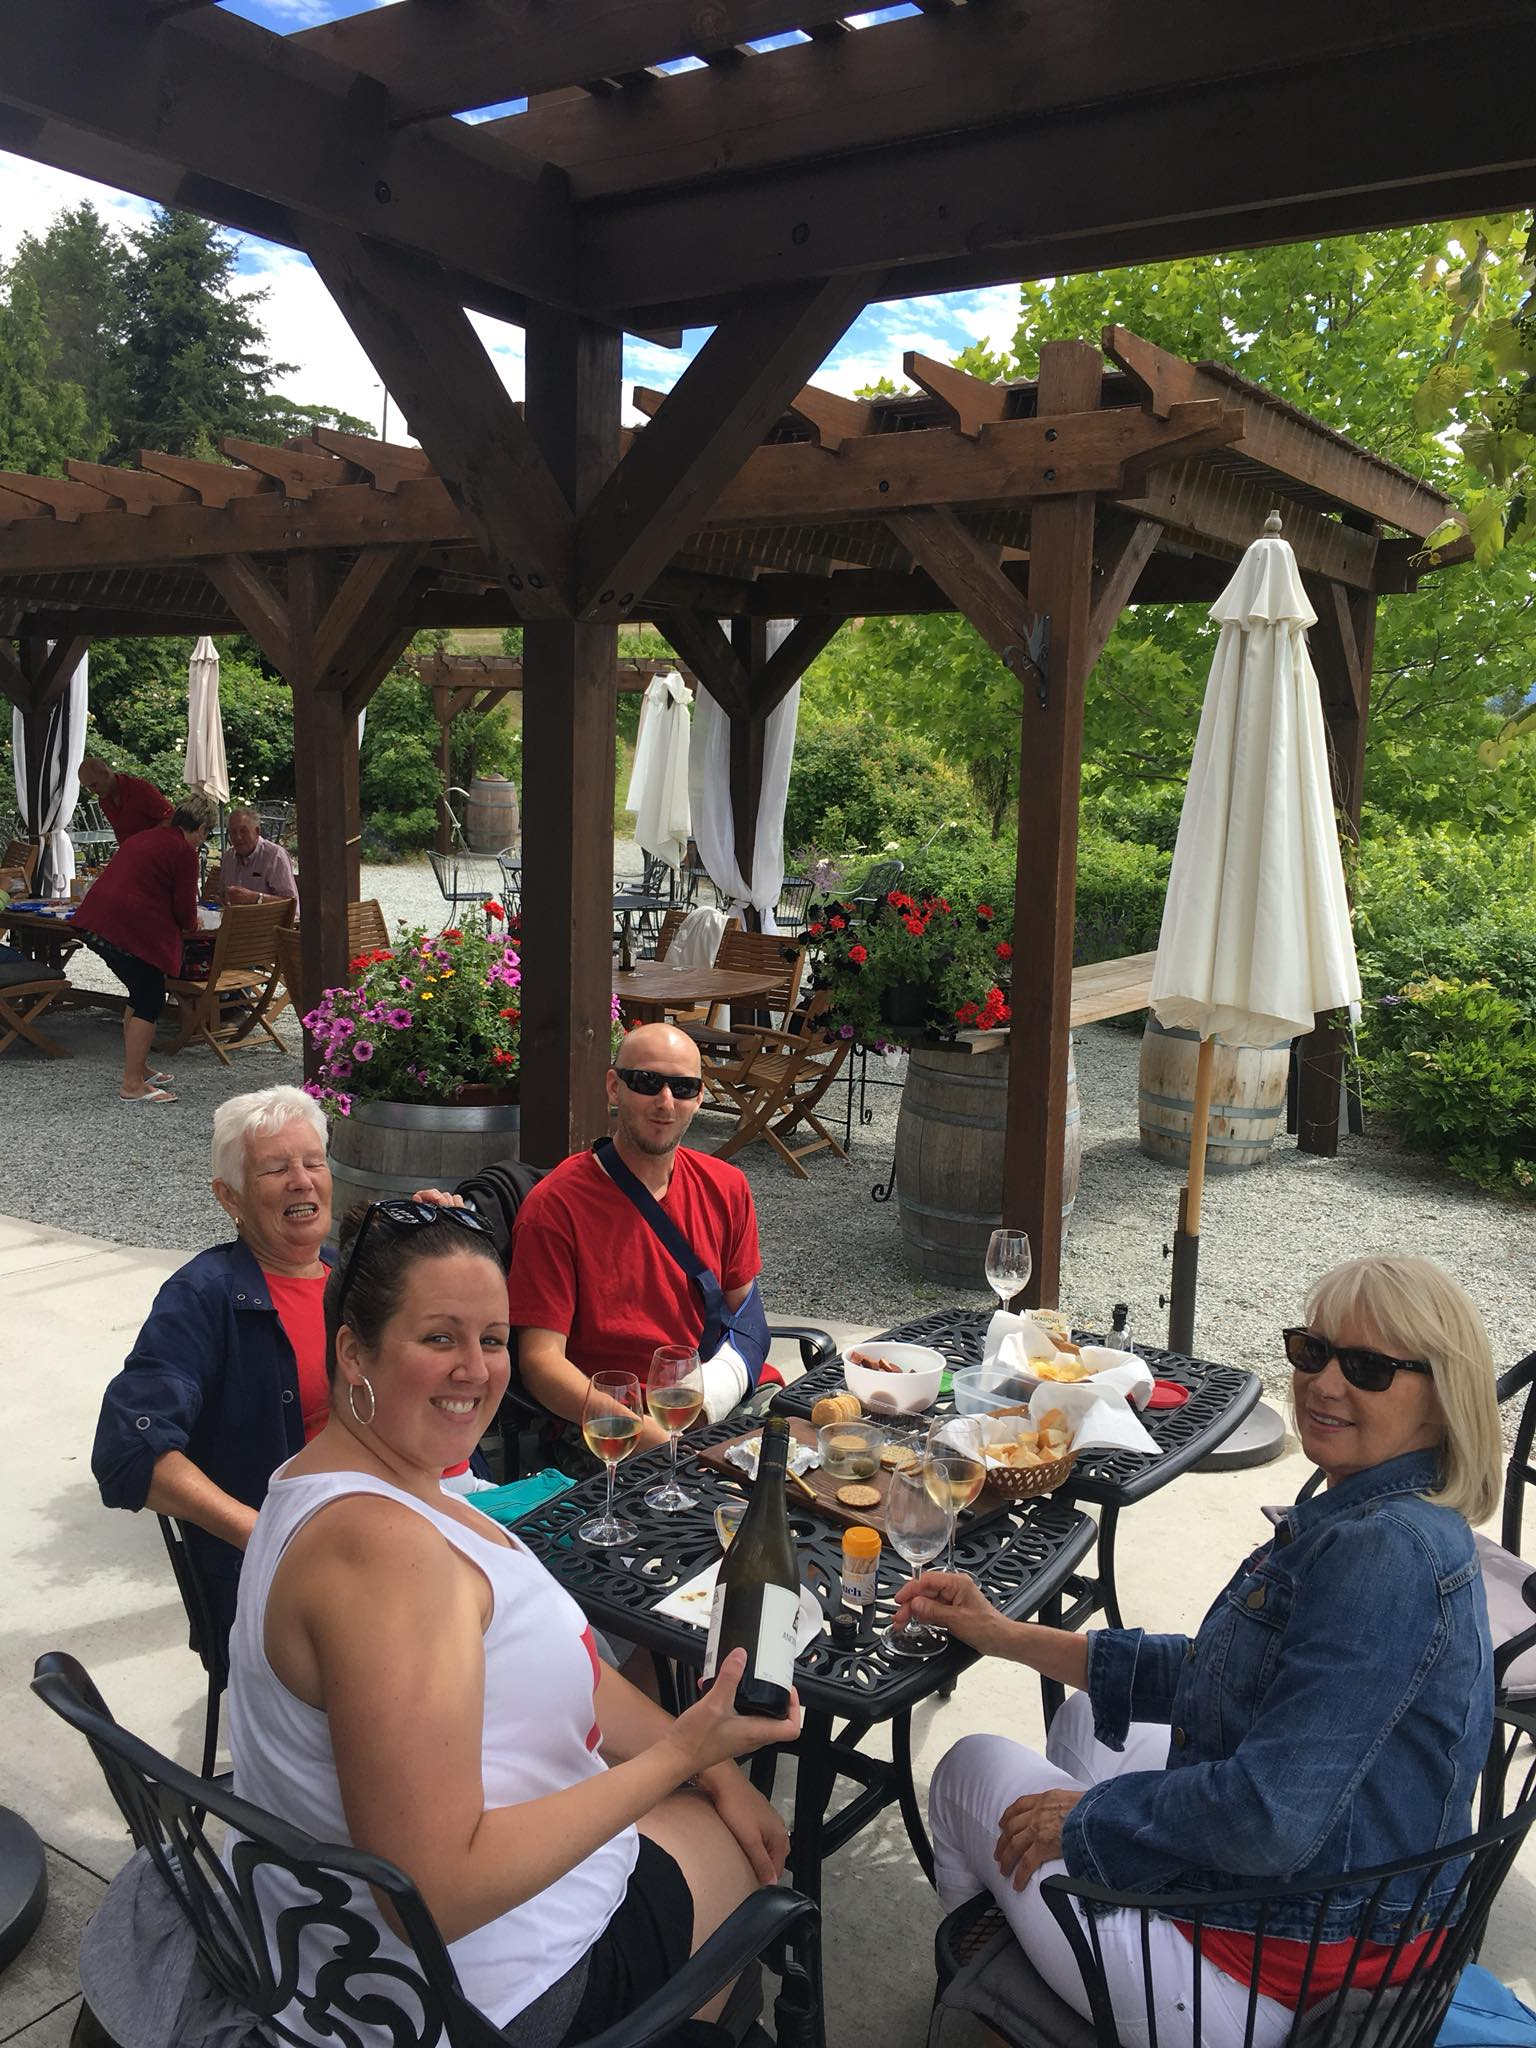 Lunch on the patio.